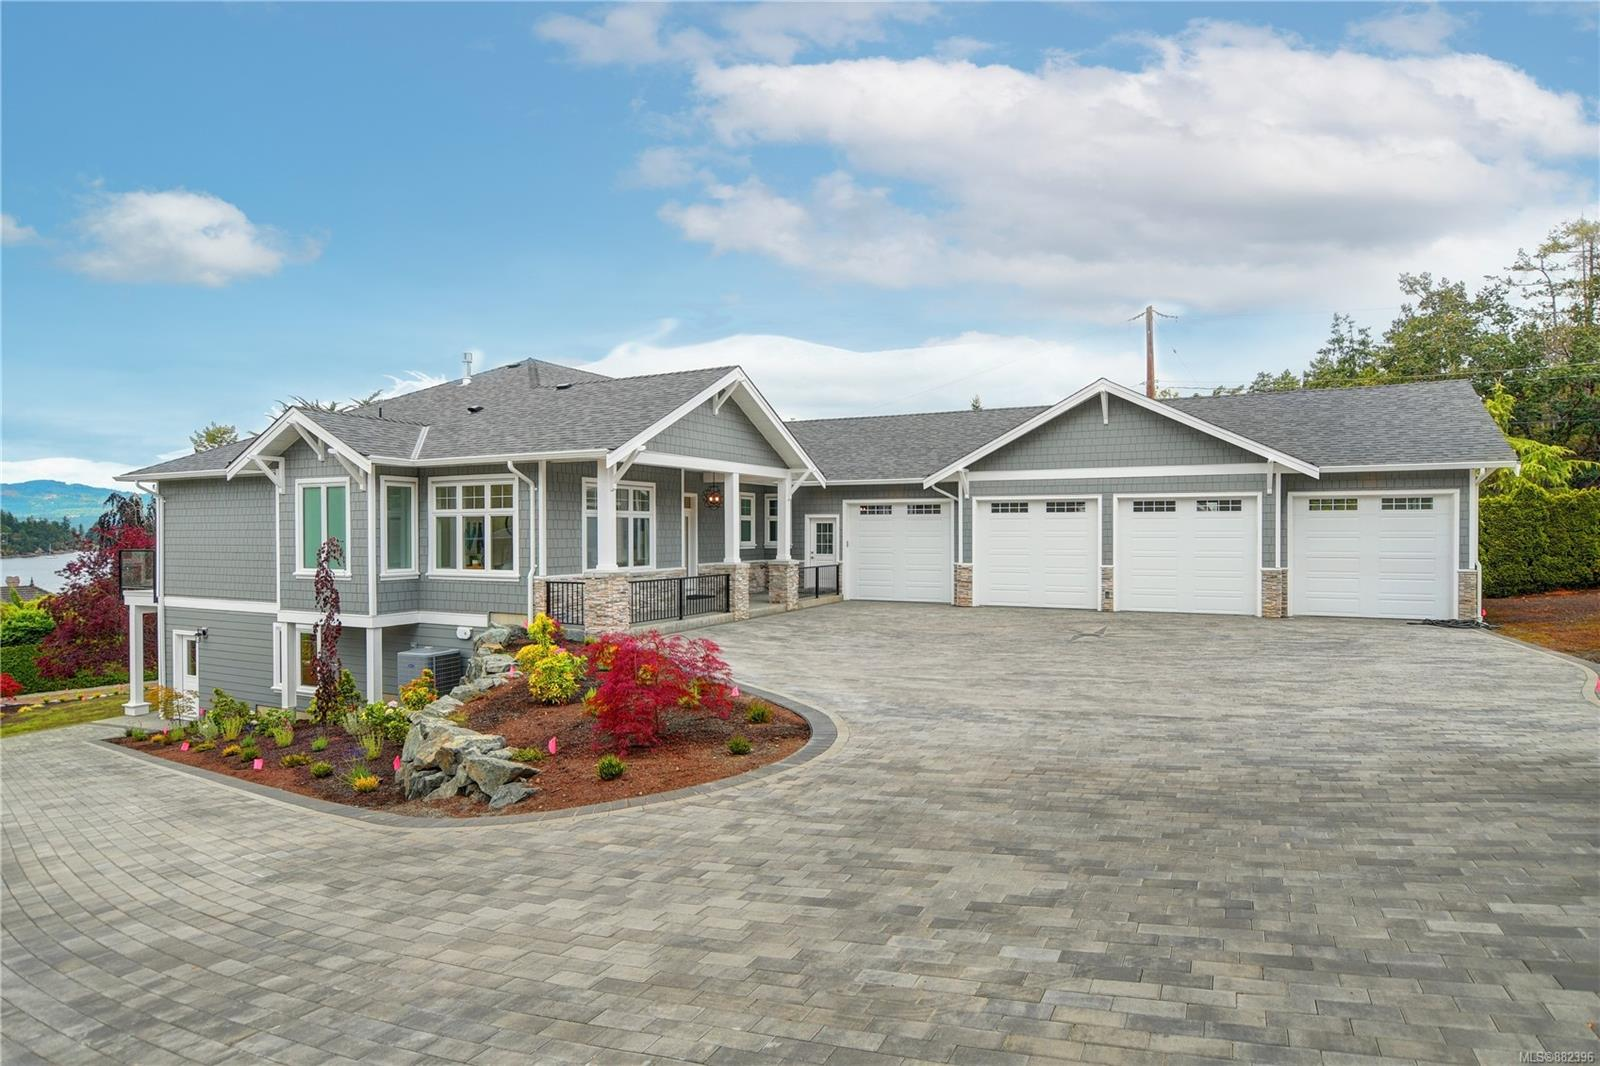 """Beautiful new home with  ocean views in desirable Deep Cove! Rarely does an opportunity to purchase a very special residence on .51 of an acre, with  SW exposure and your own beach access via legal easement become available. Enjoy relaxation from dawn to dusk from the terrace, while watching breathtaking sunsets and marine life including herons, eagles and whales. This luxurious home offers an open concept plan with oak wide plank engineered flooring, 10 FT. coffered ceilings and floor to ceiling windows creating a light and spacious atmosphere. The main floor has an elegant great room, gourmet kitchen, three bedrooms and three bathrooms including the master suite. On the lower floor you will find nine foot ceilings, a guest suite and large recreation room with sliding patio doors for everyone to enjoy. A bonus is a """"wow"""" spacious four car garage. GST included."""